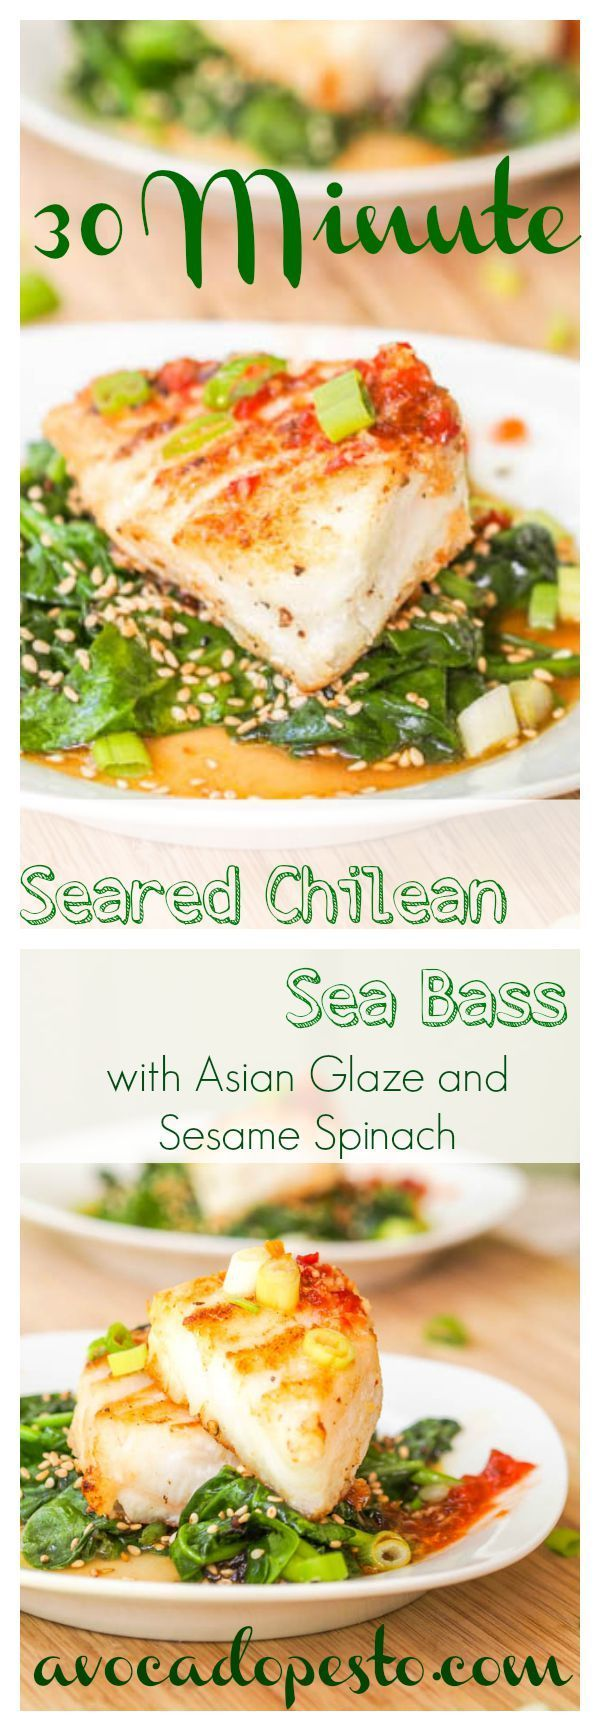 Hands down the most impressive fish recipe I have ever made. 30 minute Seared Chilean sea bass fillets served atop lightly wilted sesame spinach and drizzled with a Vietnamese inspired sweet, sour, spicy, salty glaze. You will be amazed how easy it is to prepare a 5 star meal. Gluten Free and Dairy Free.